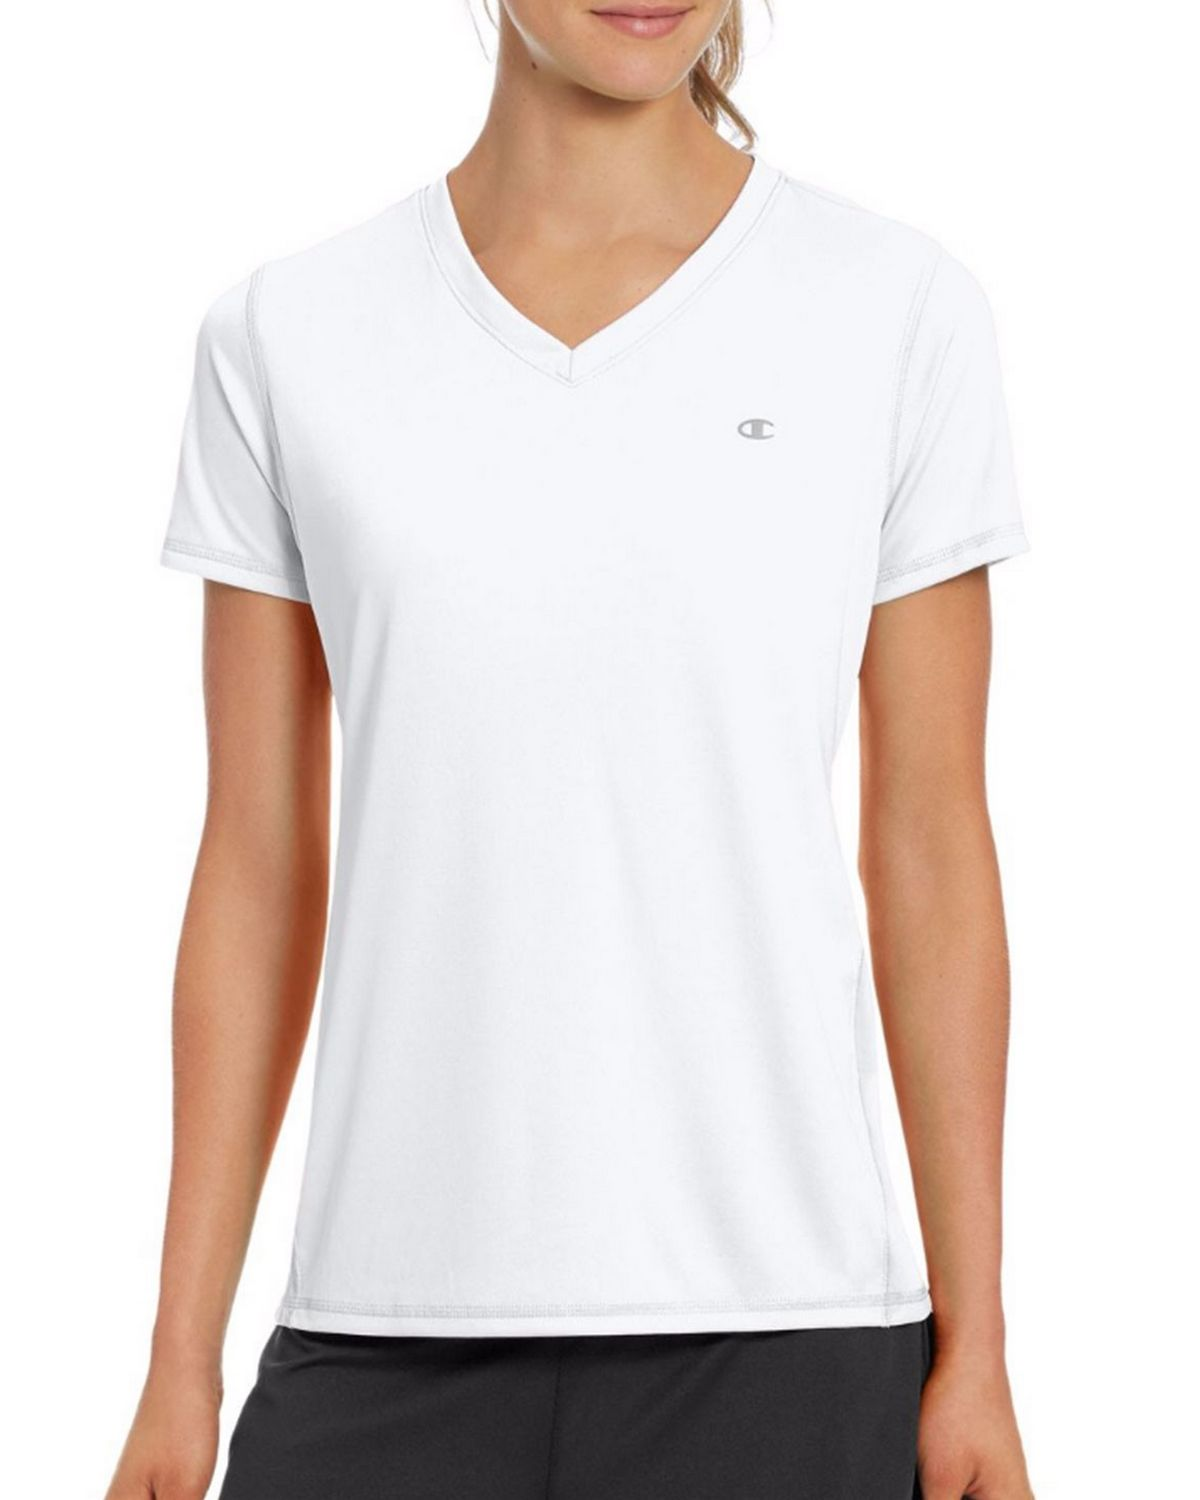 Champion W50063 Vapor Womens Tee - White - L W50063